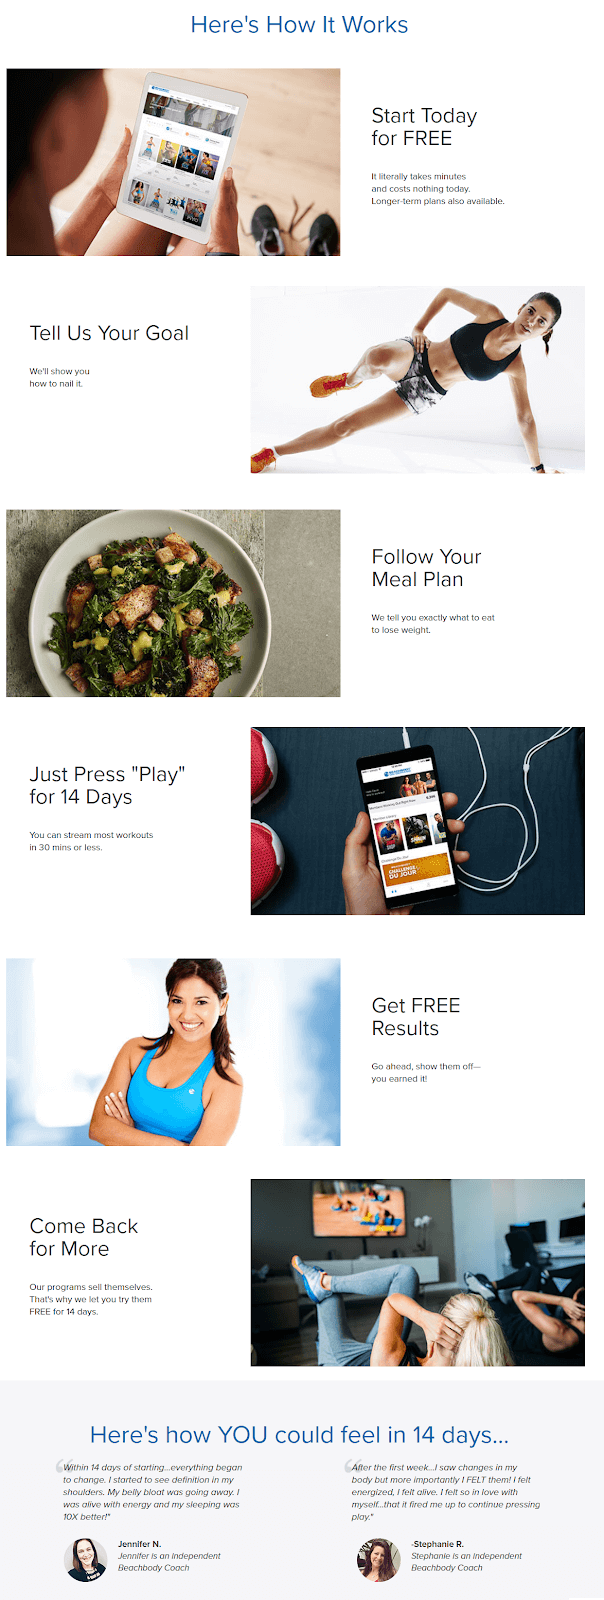 Beachbody on Demand landing page shows the value of the product